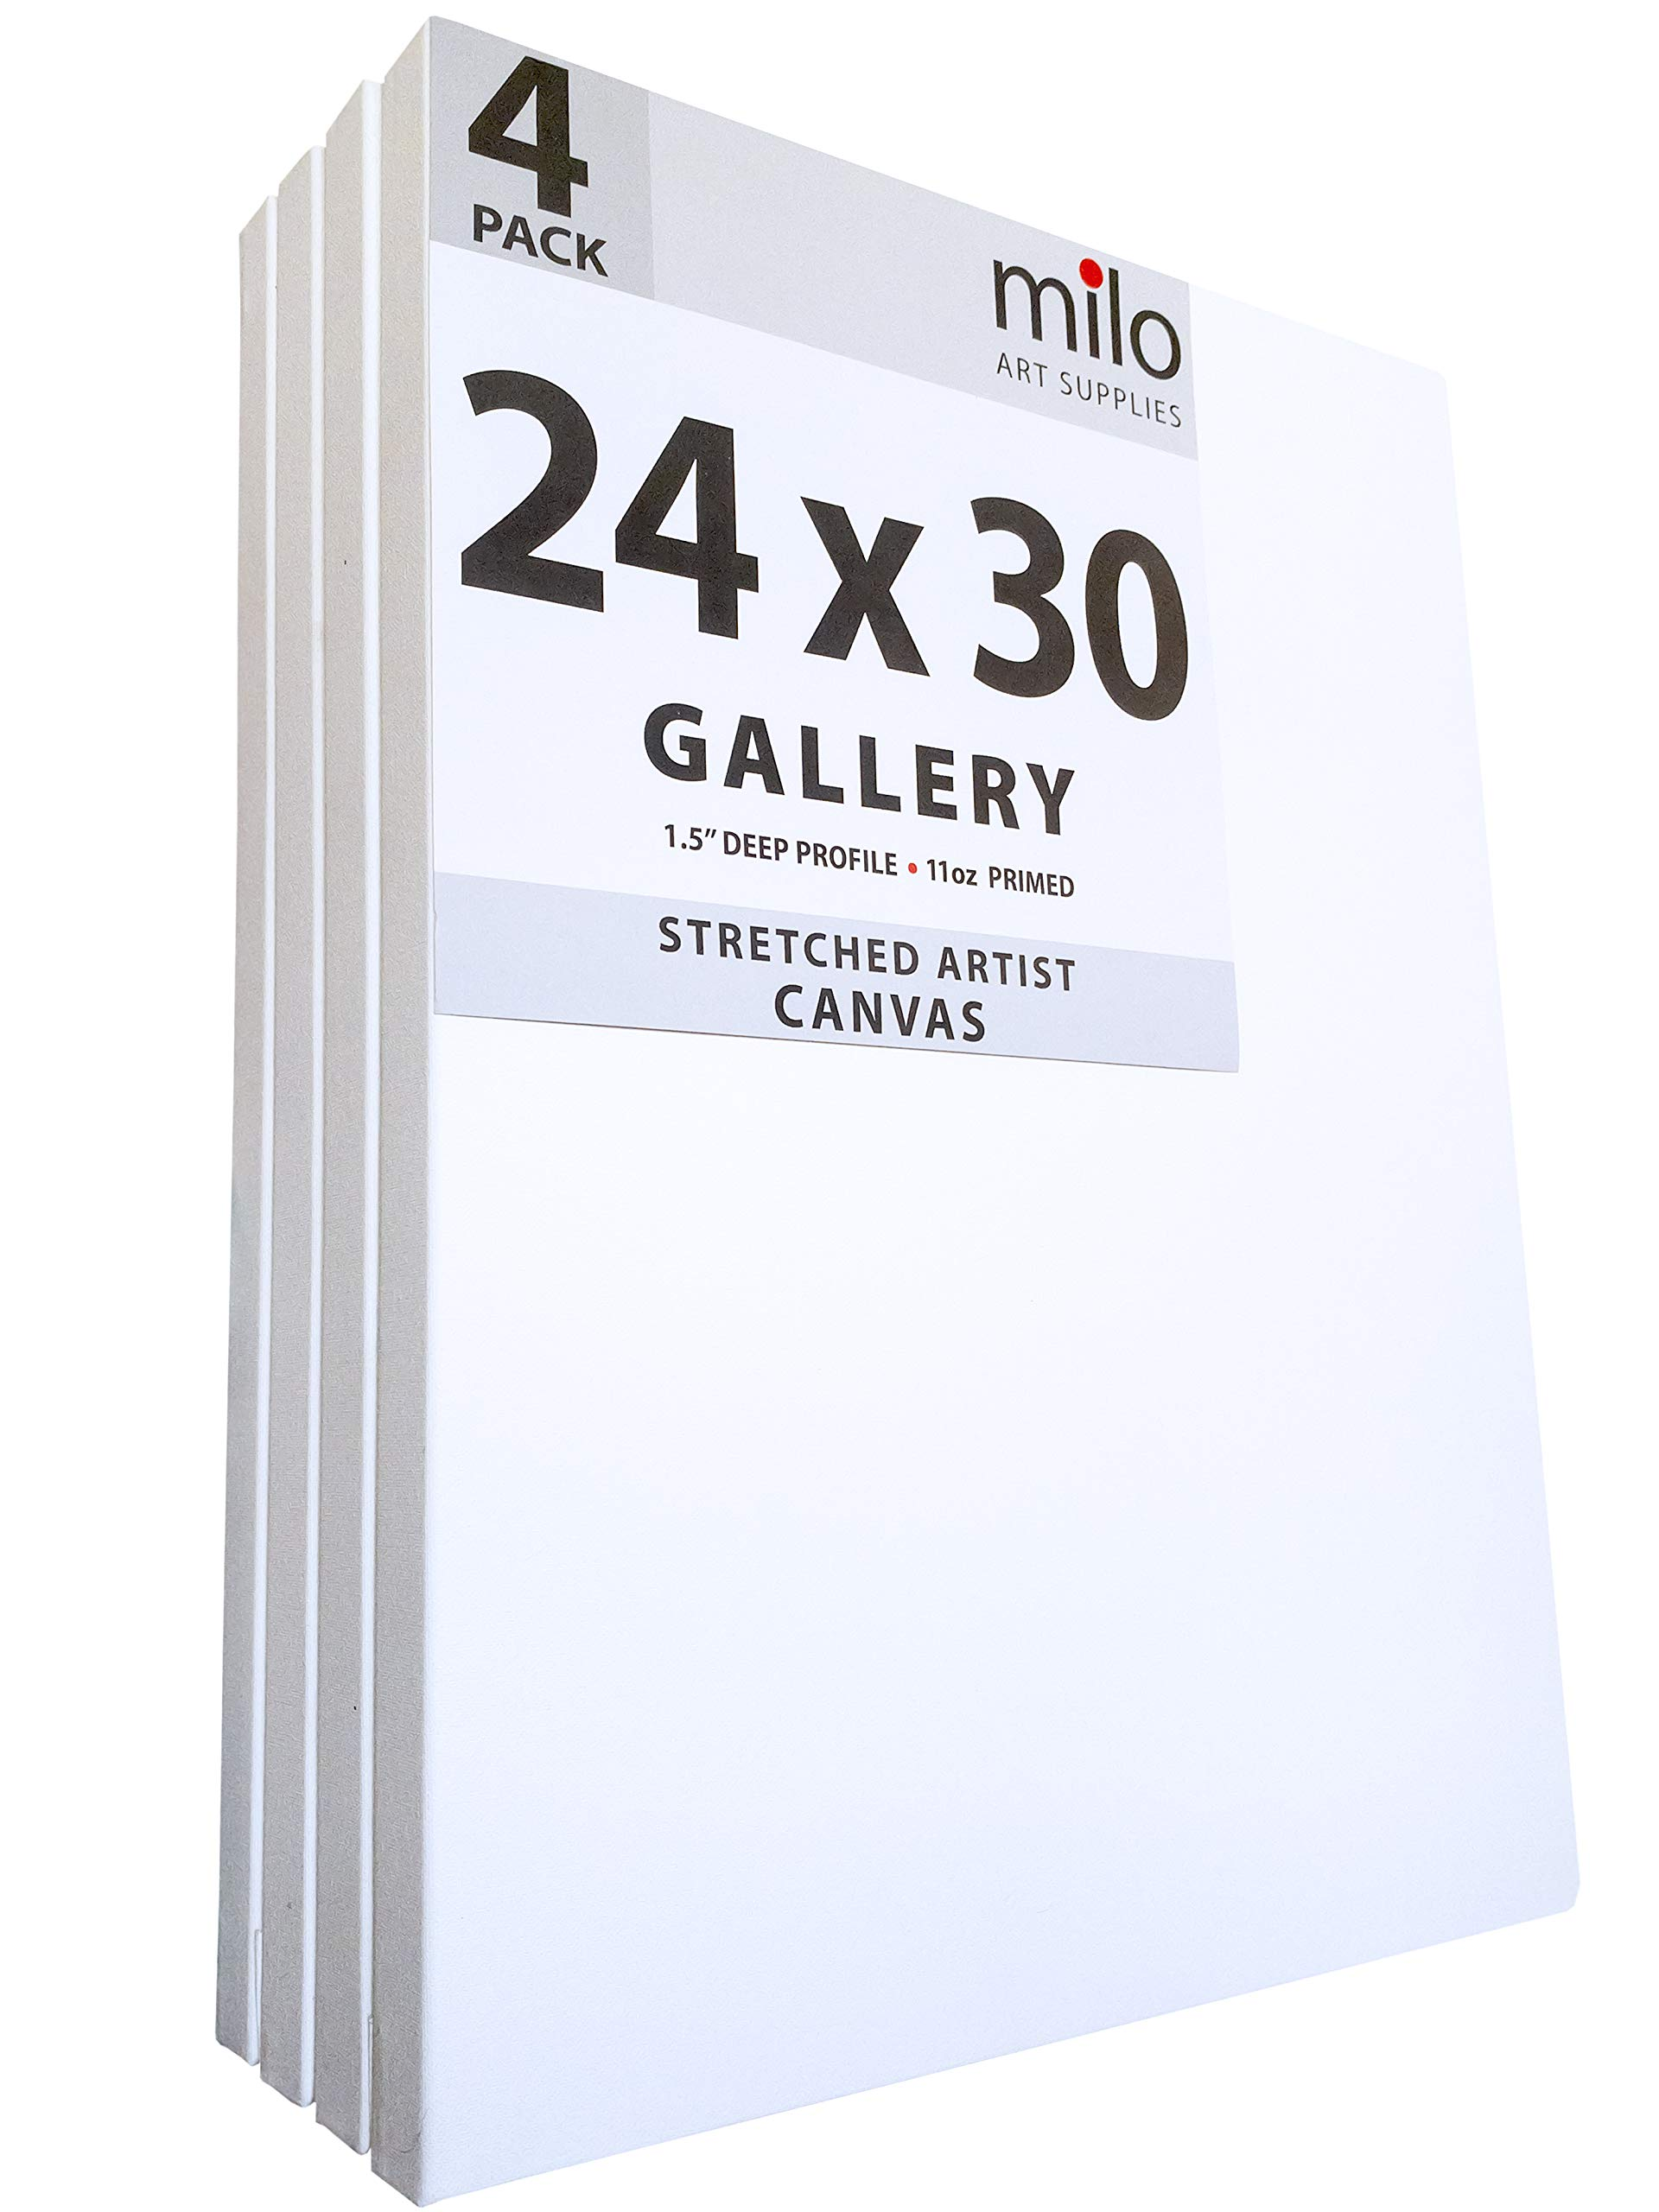 MILO PRO | 24 x 30'' Stretched Canvas Pack of 4 | 1.5'' inch Deep Gallery Profile | 11 oz Primed Large Professional Artist Painting Canvases | Ready to Paint White Blank Art Canvas Bulk Set by milo